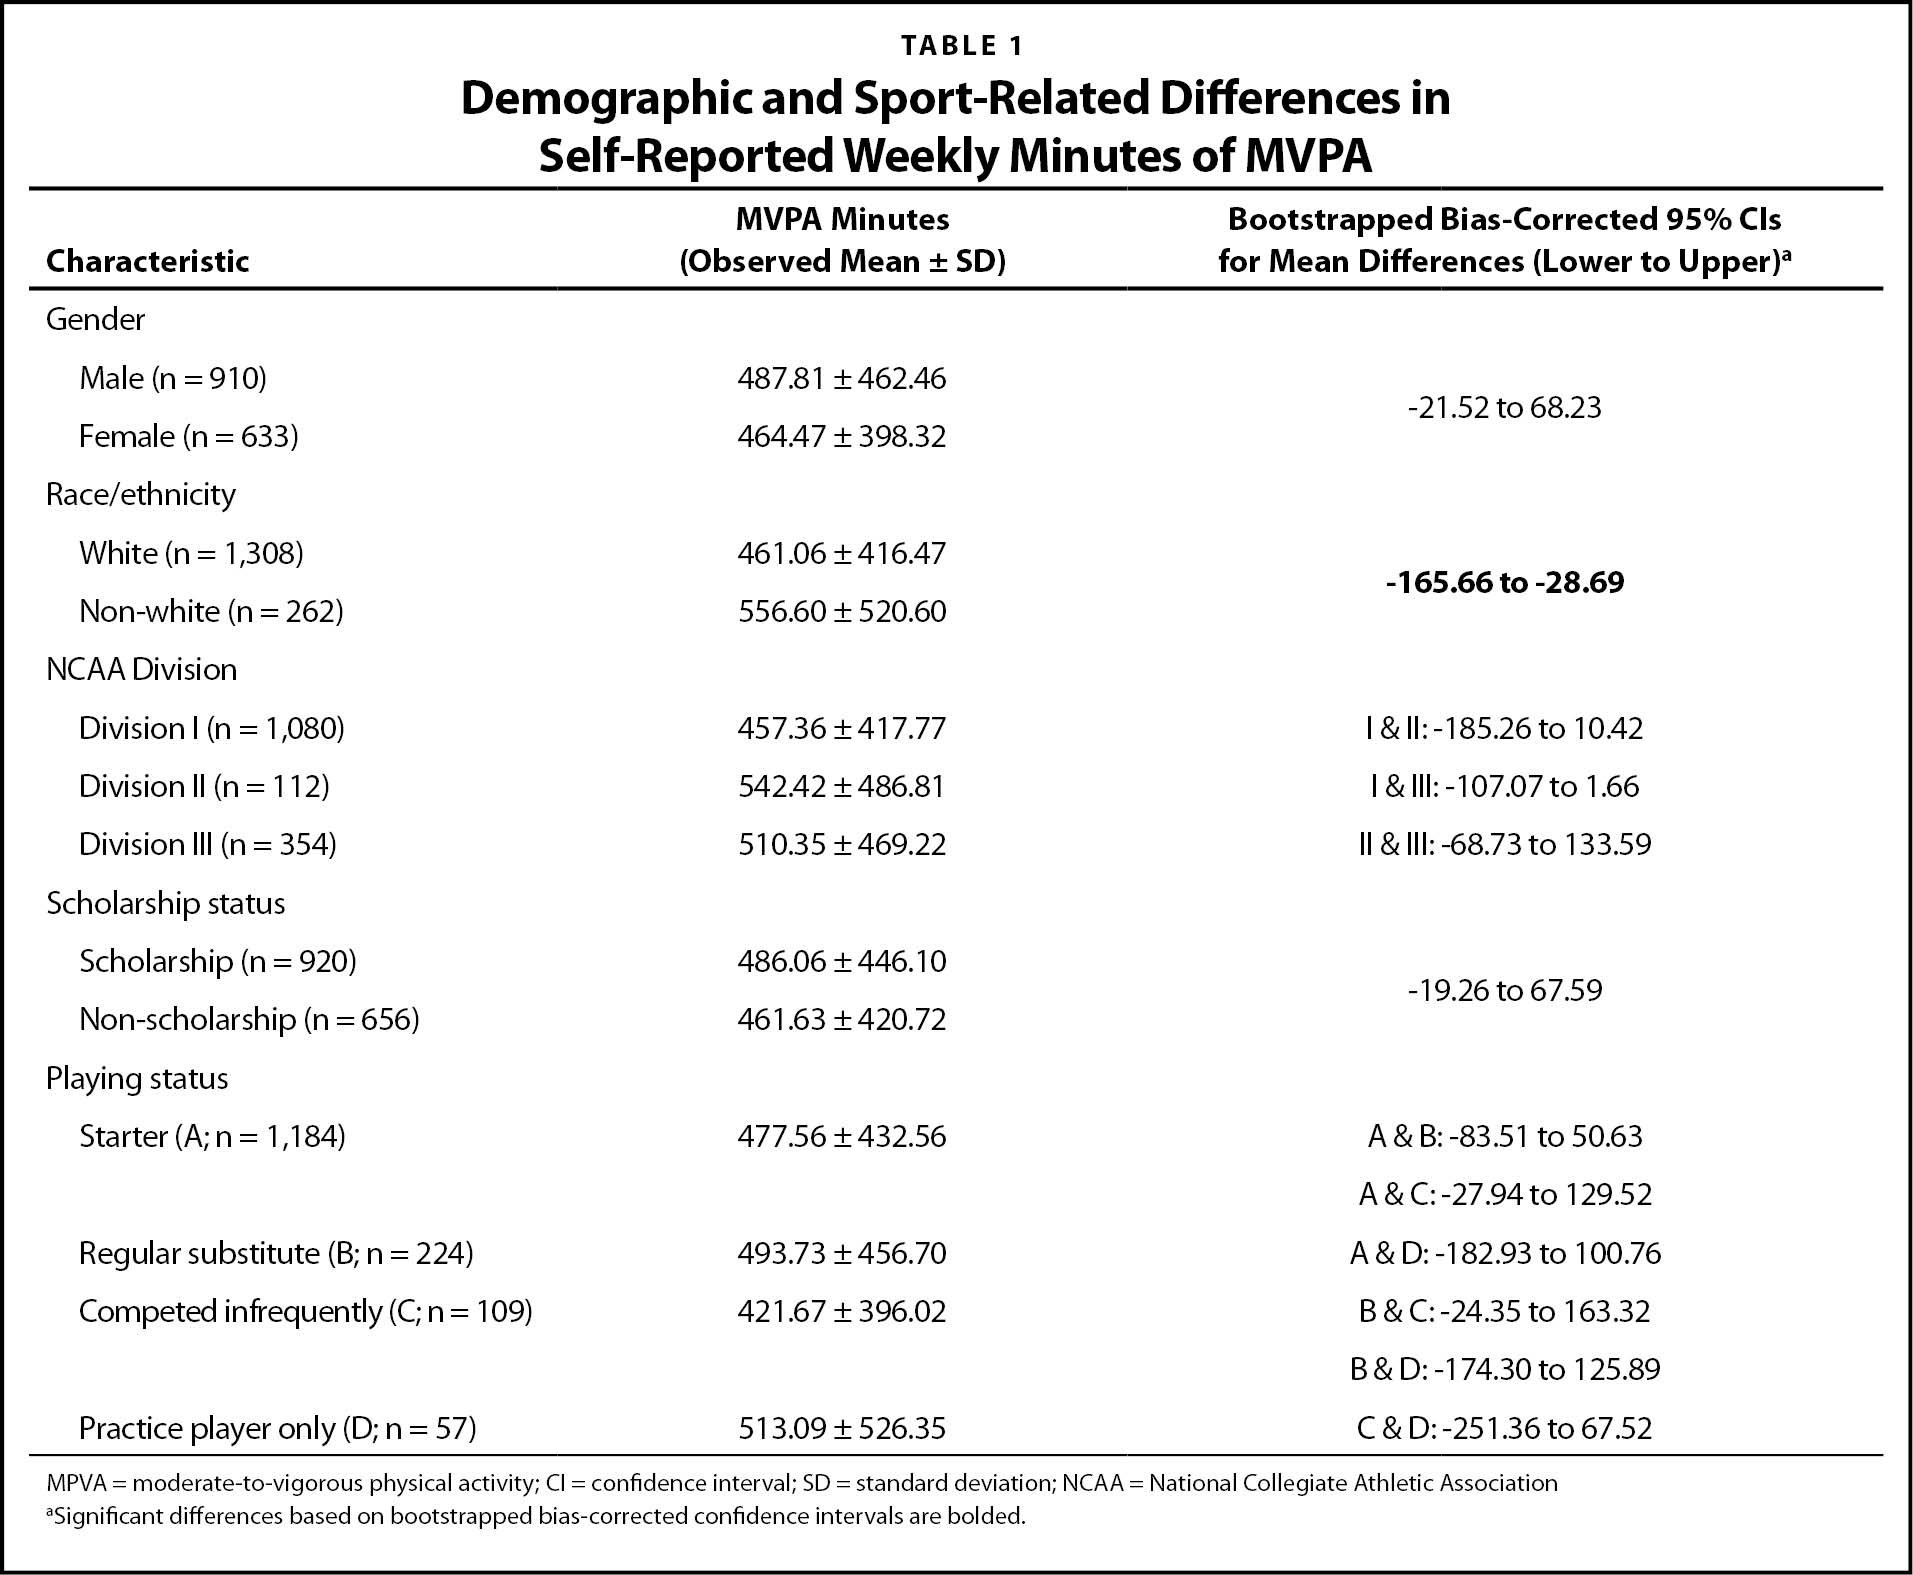 Demographic and Sport-Related Differences in Self-Reported Weekly Minutes of MVPAa